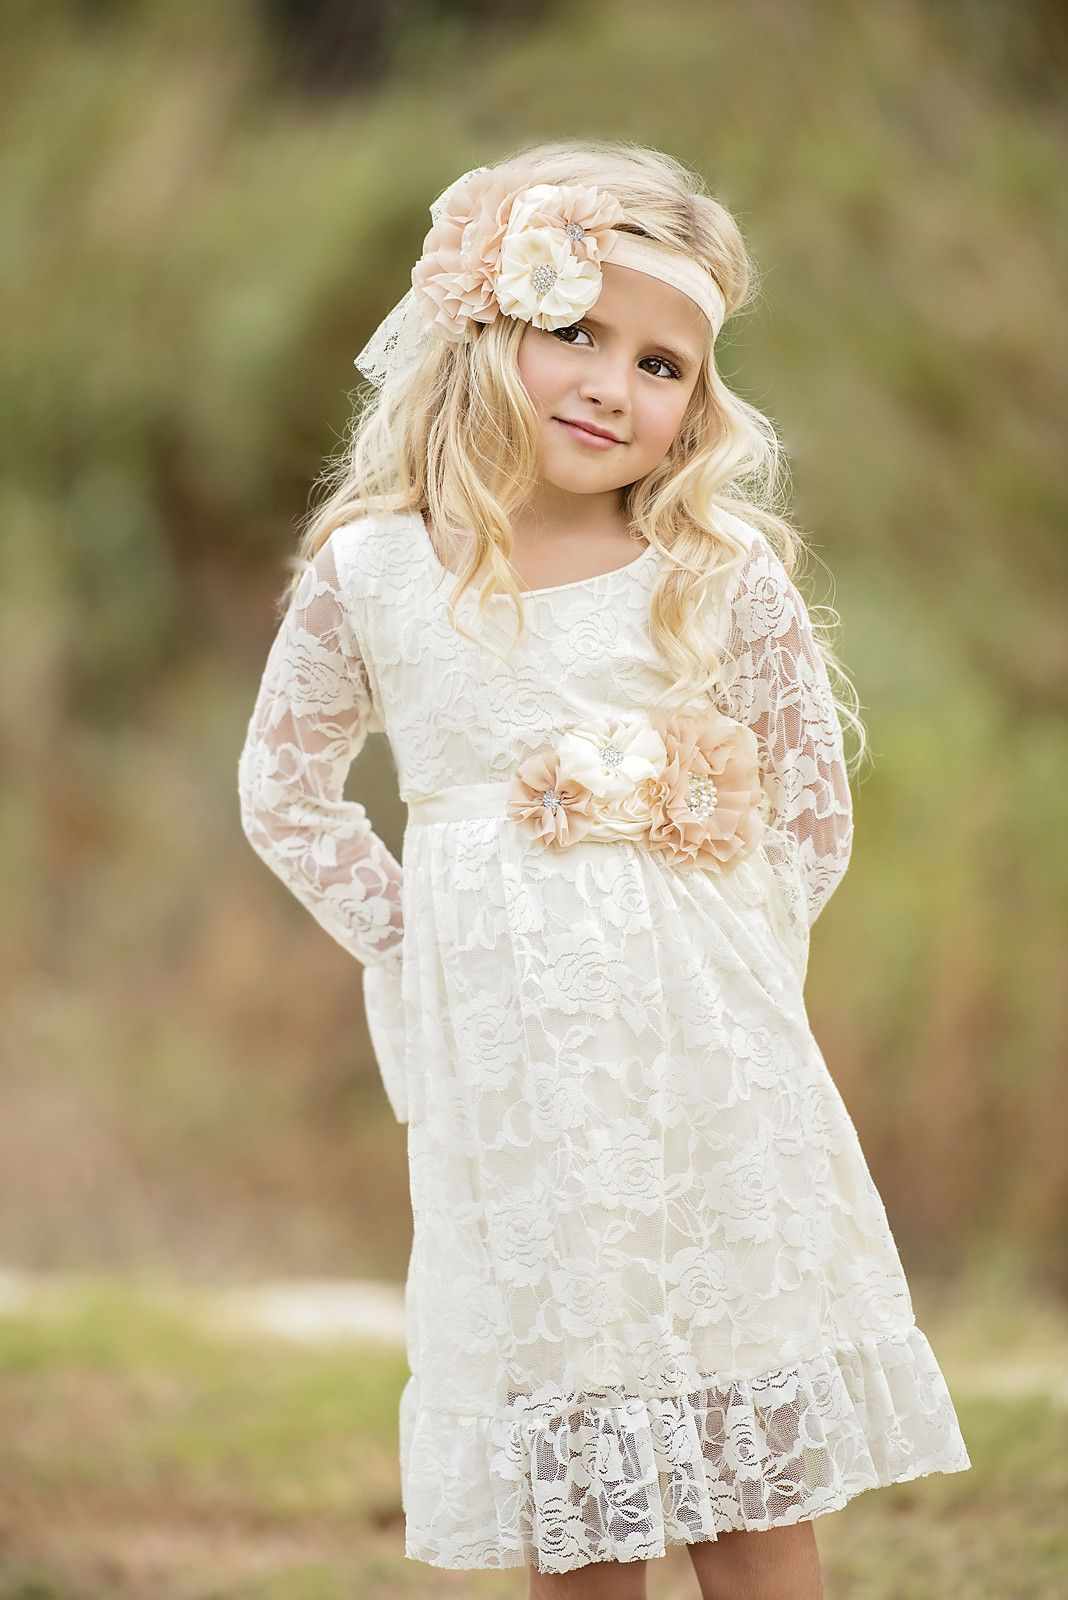 This vintage ivory lace dress features ruffle sleeves and hem that